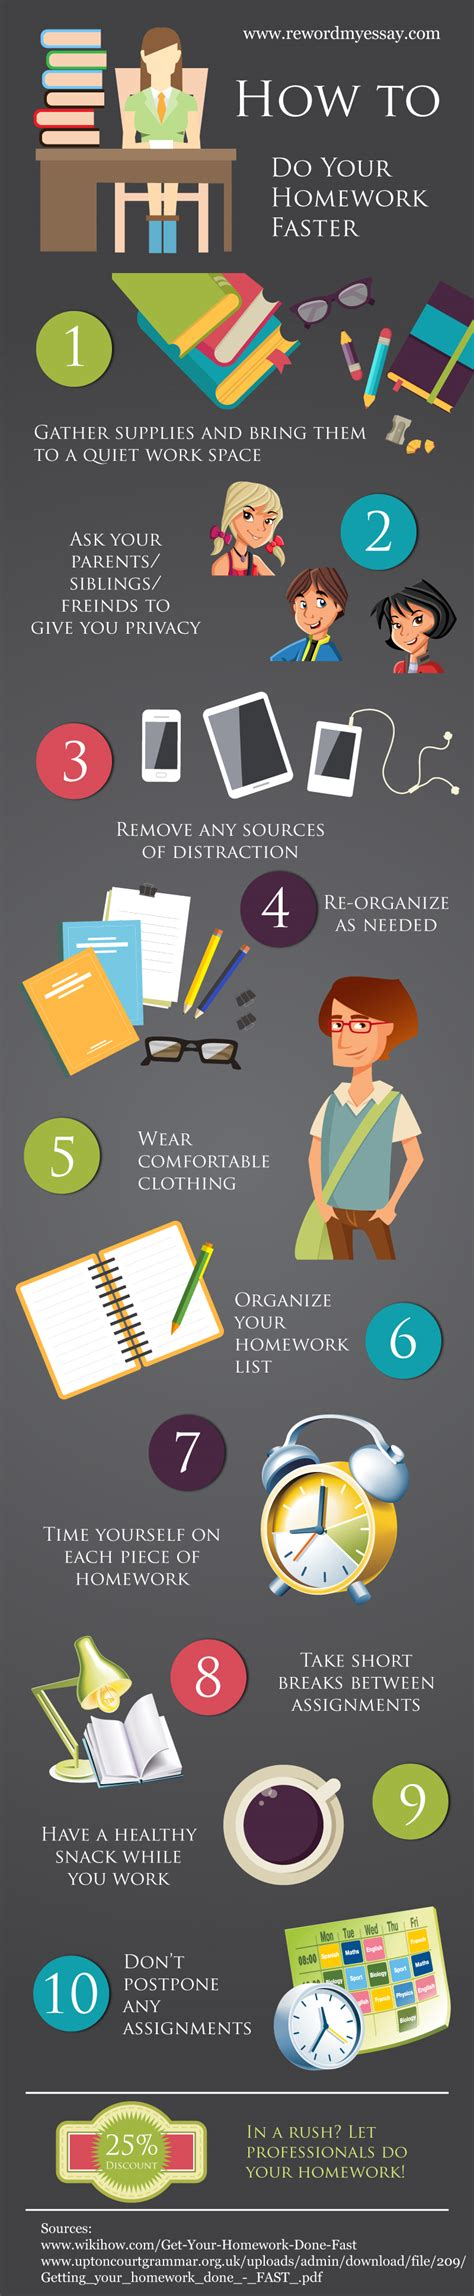 how to get your to be a service how to do your homework faster ucollect infographics